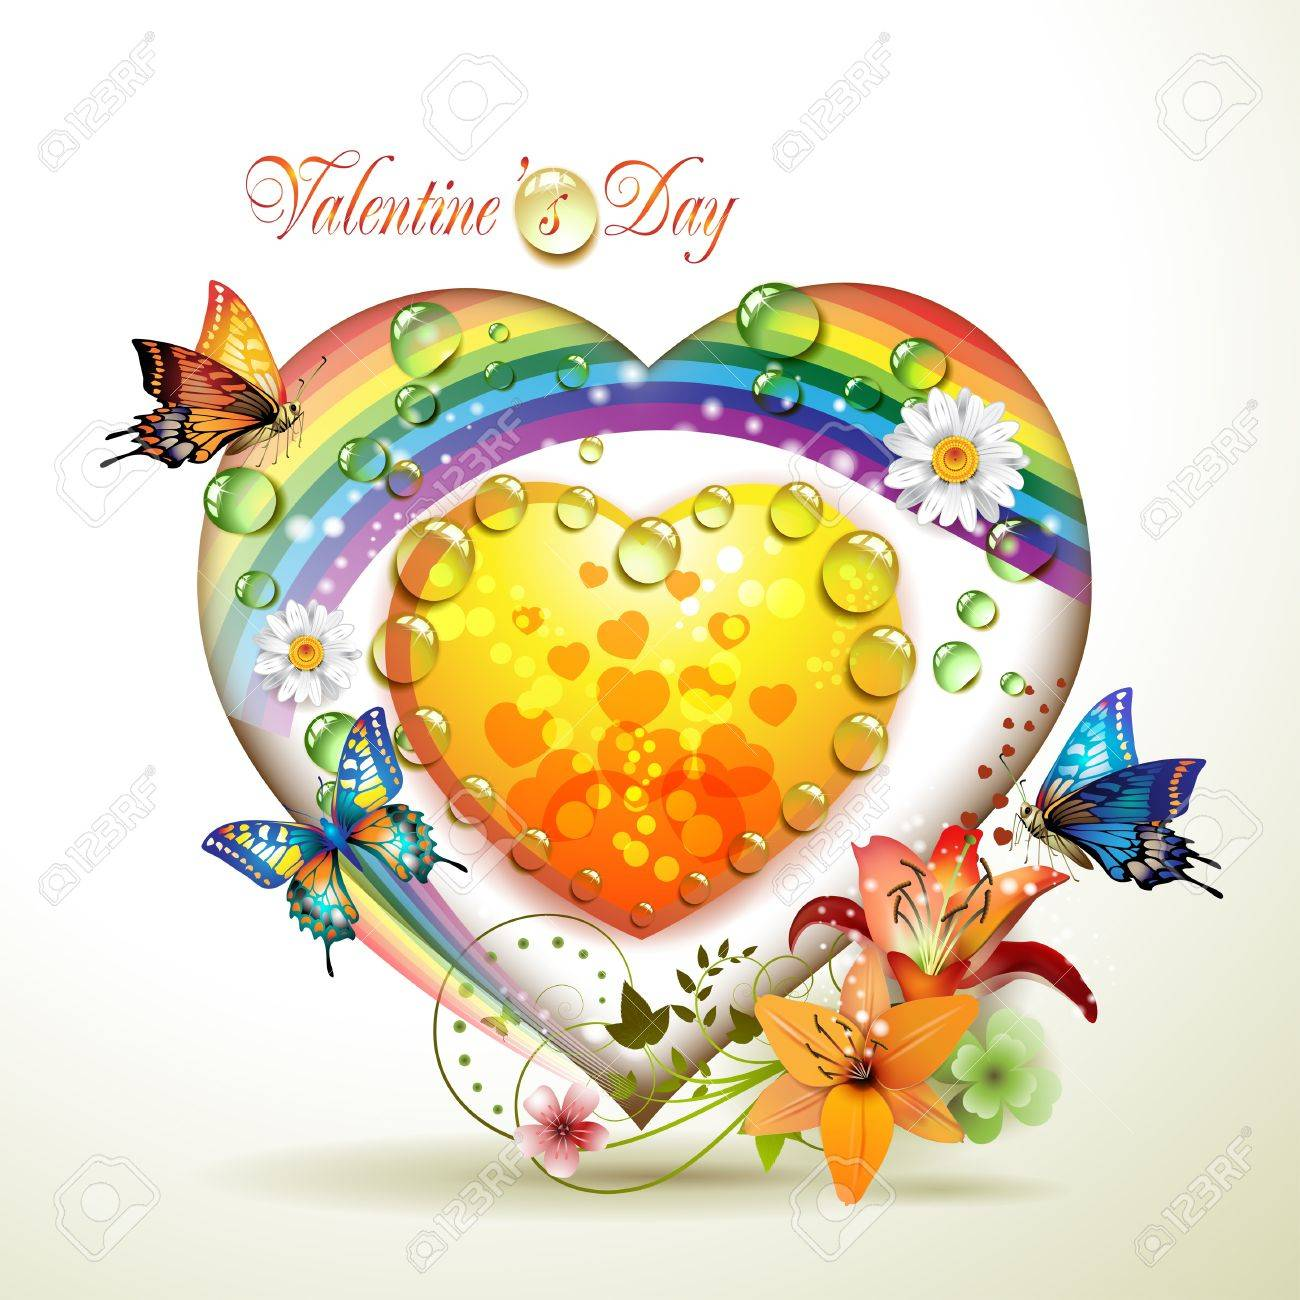 Valentine's day card. Heart with lily and butterflies Stock Vector - 9719165